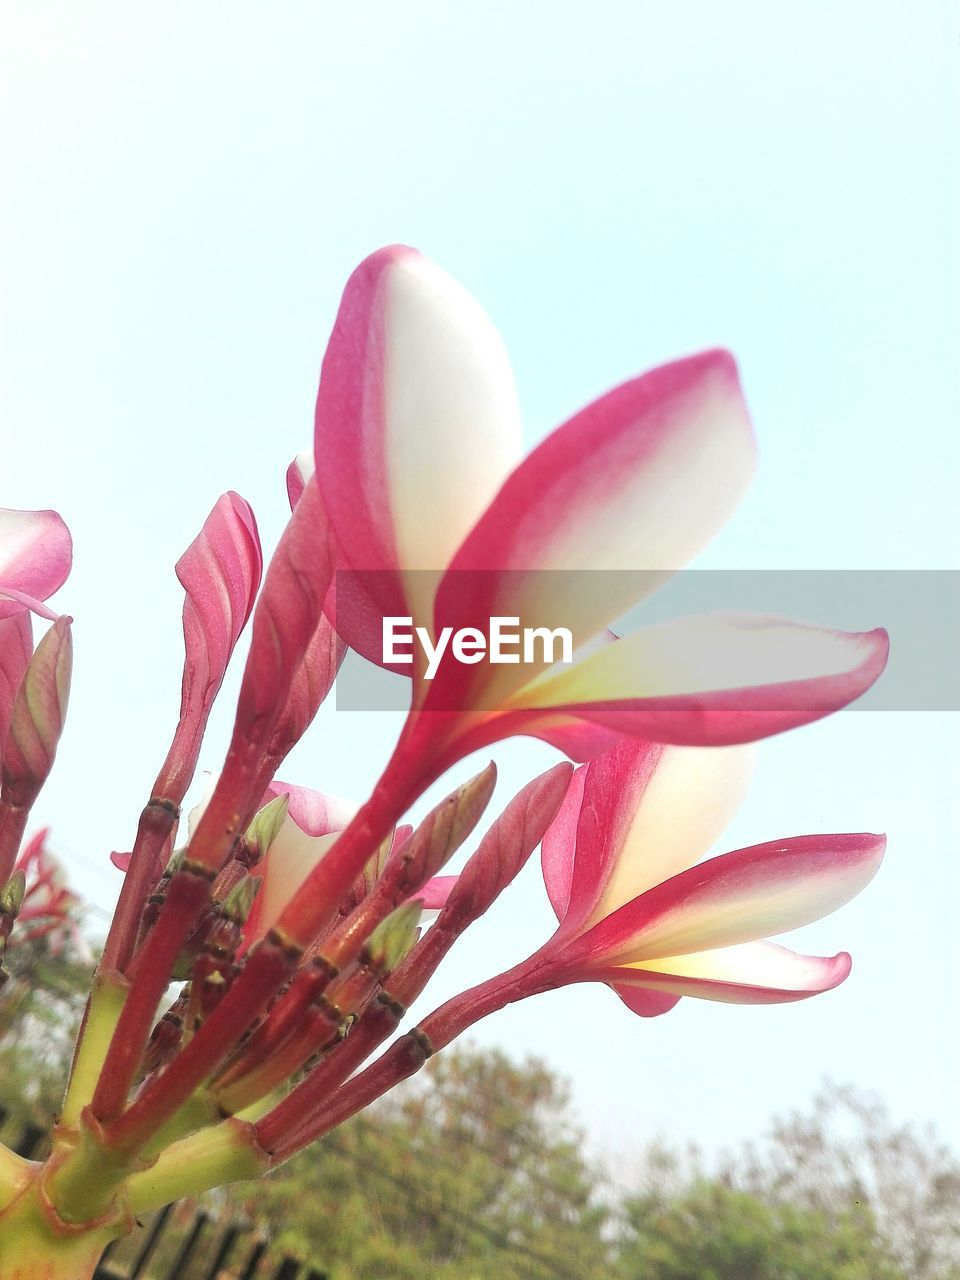 flower, petal, beauty in nature, freshness, fragility, nature, growth, pink color, flower head, clear sky, close-up, no people, day, outdoors, plant, studio shot, blooming, sky